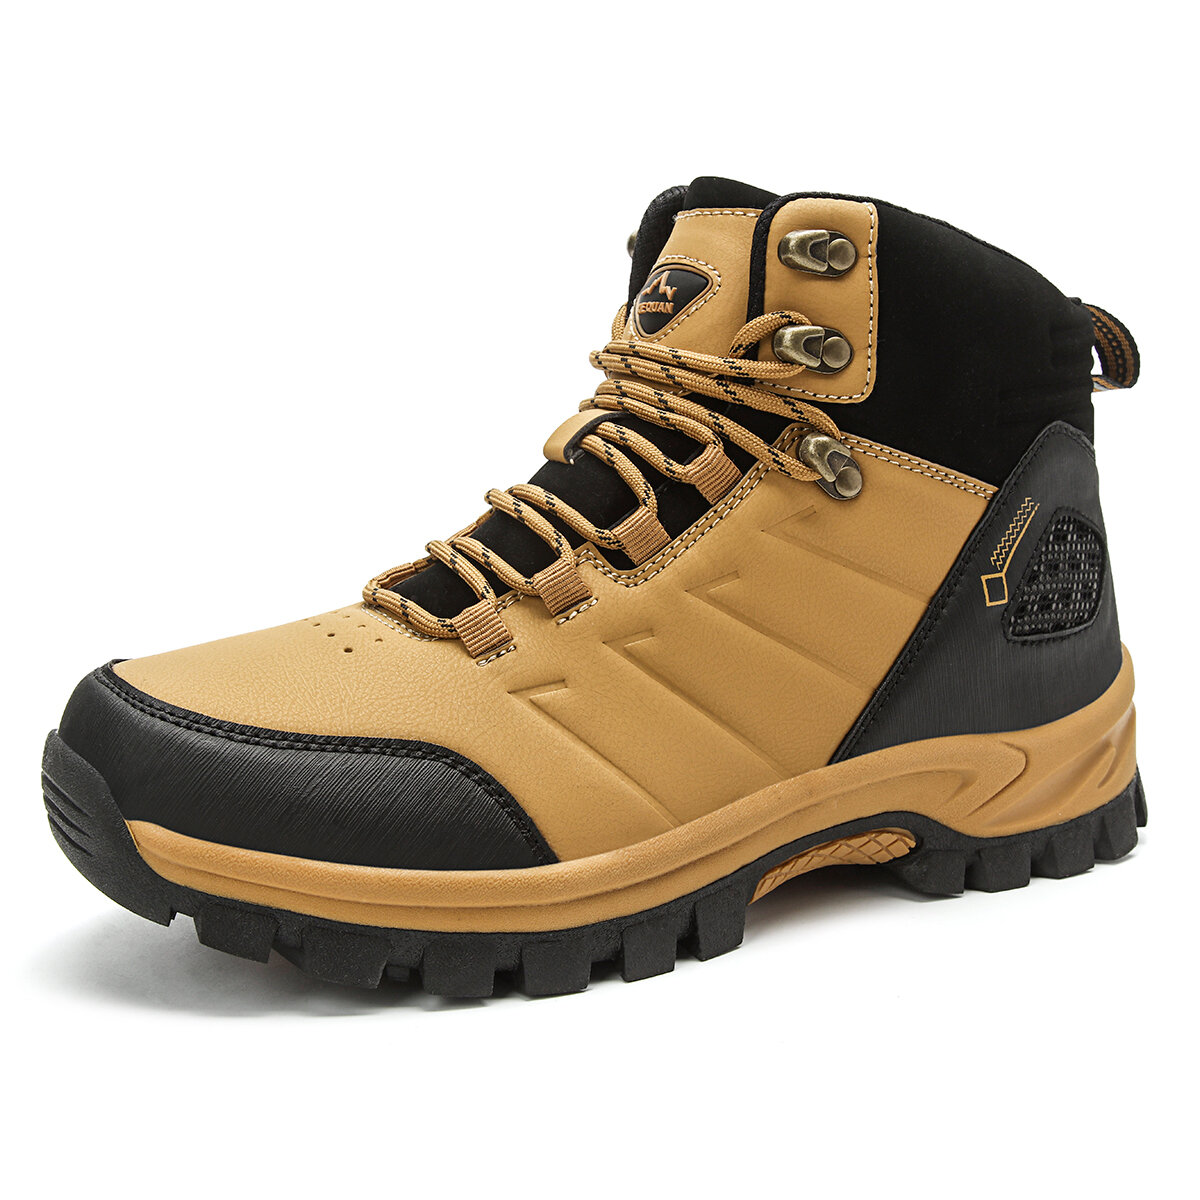 Men Breathable Soft Non Slip Wear Sole Outdoor Sport Hiking Boots